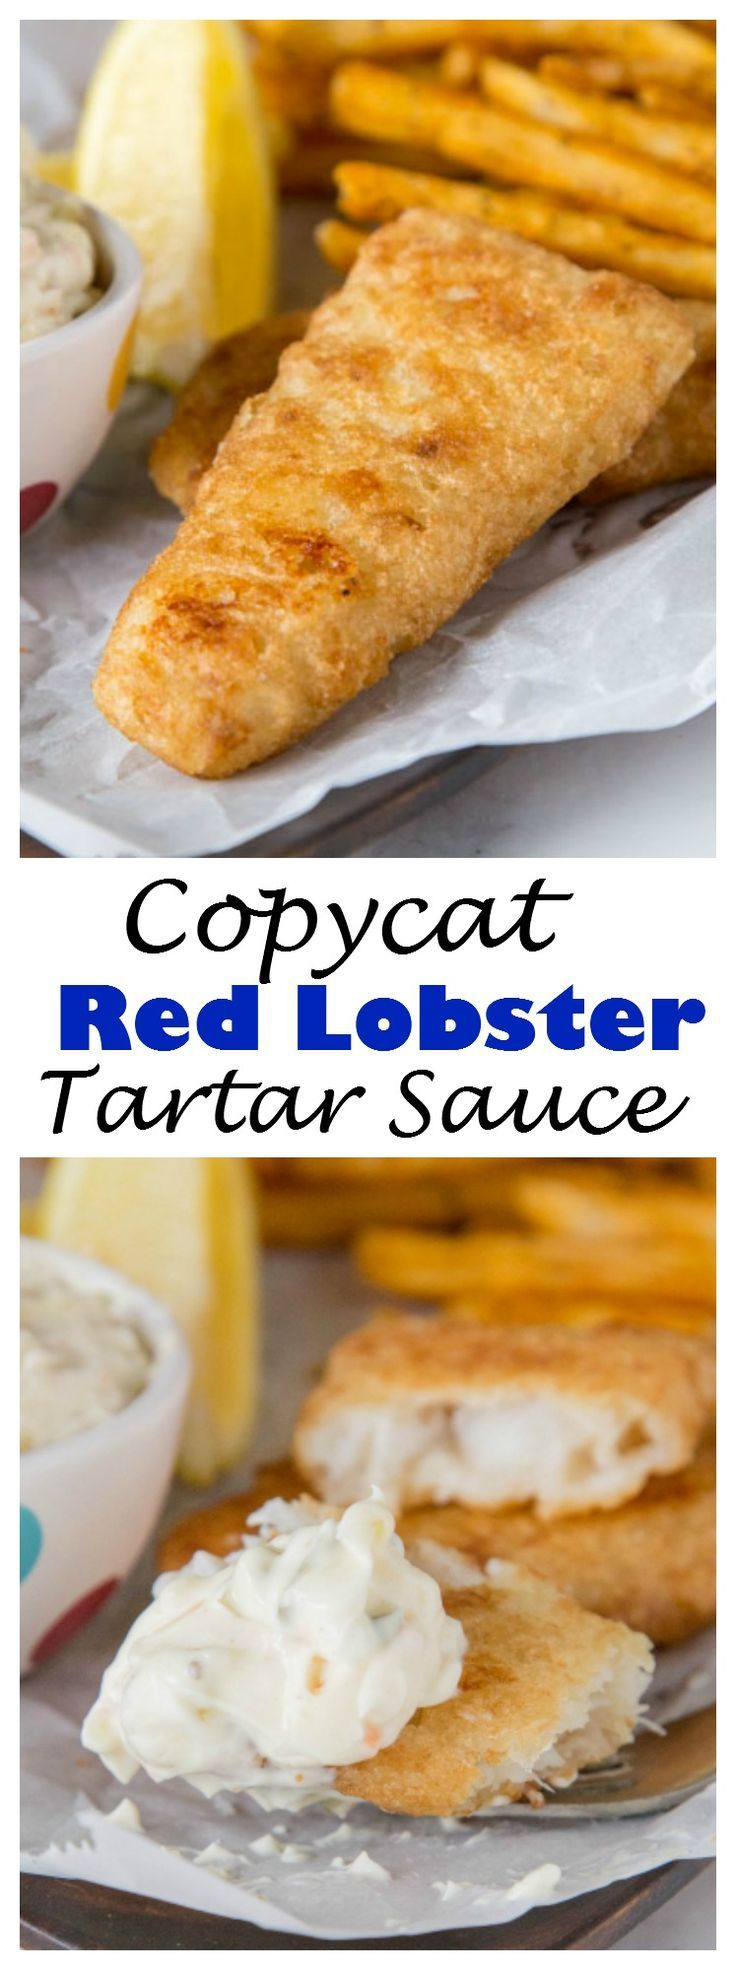 17 best ideas about lobster dinner on pinterest healthy for Red lobster fish and chips